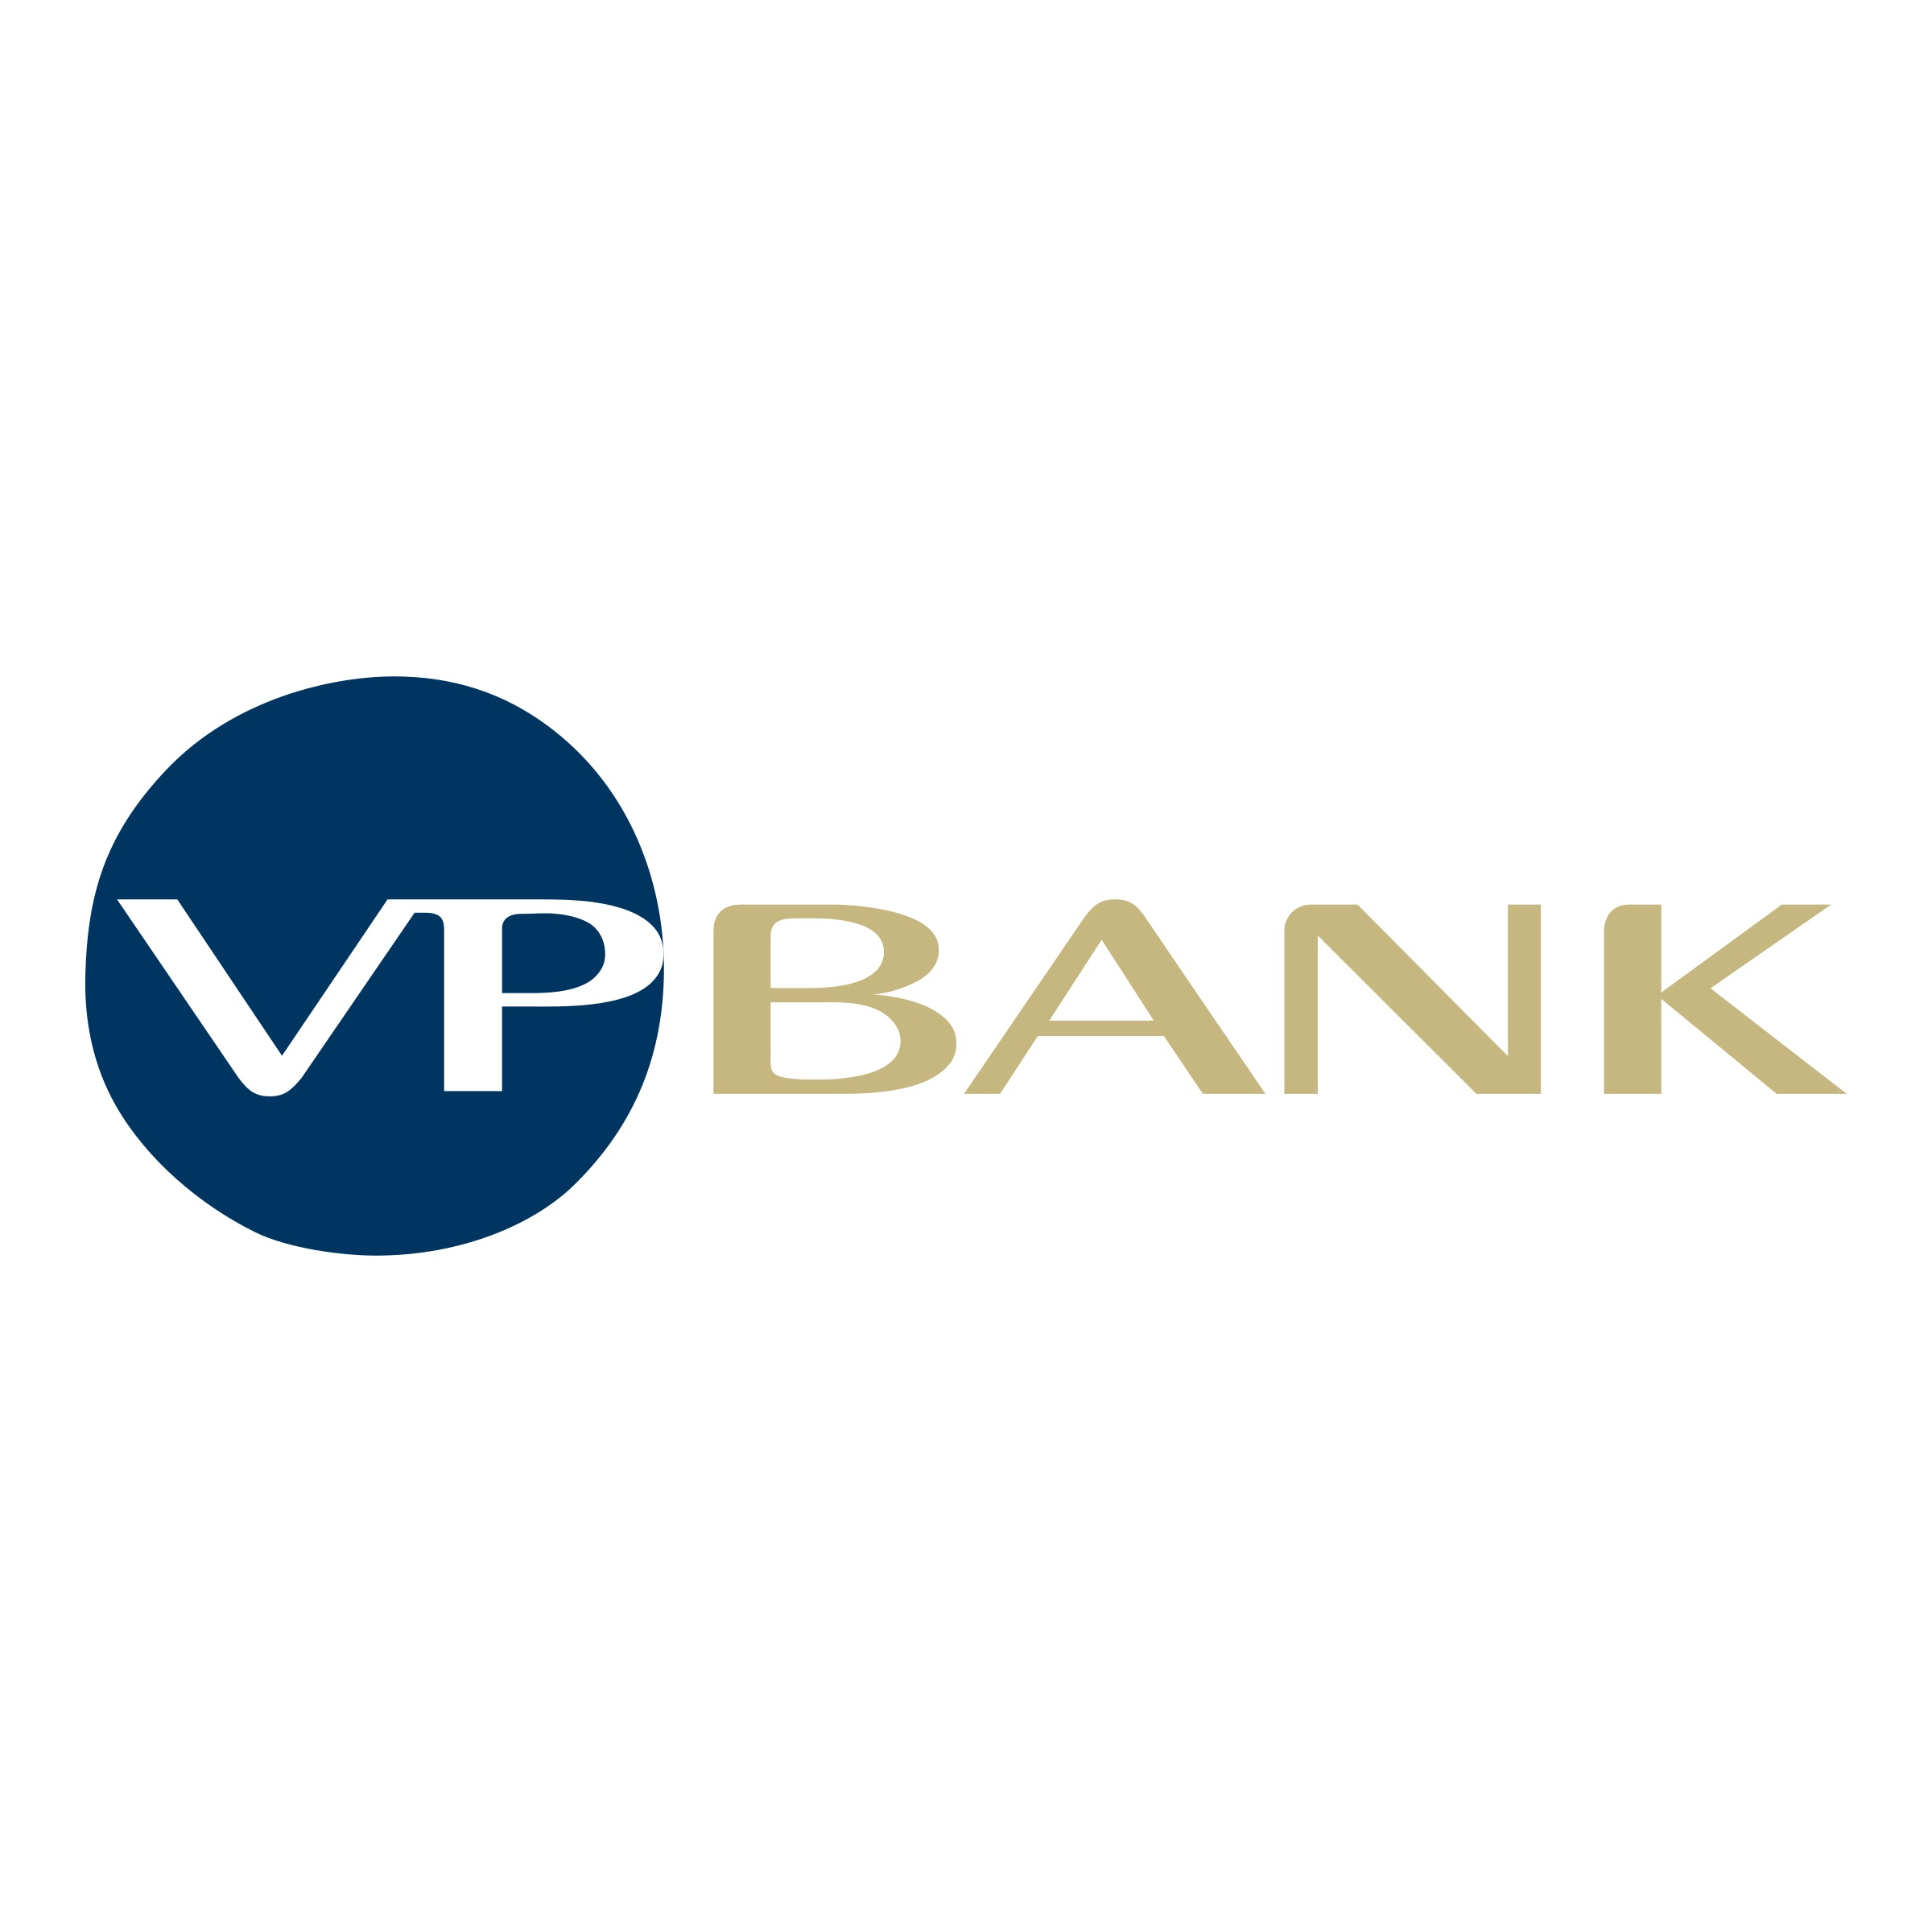 VP Bank in Singapore Awarded Best Boutique Private Bank by WealthBriefingAsia